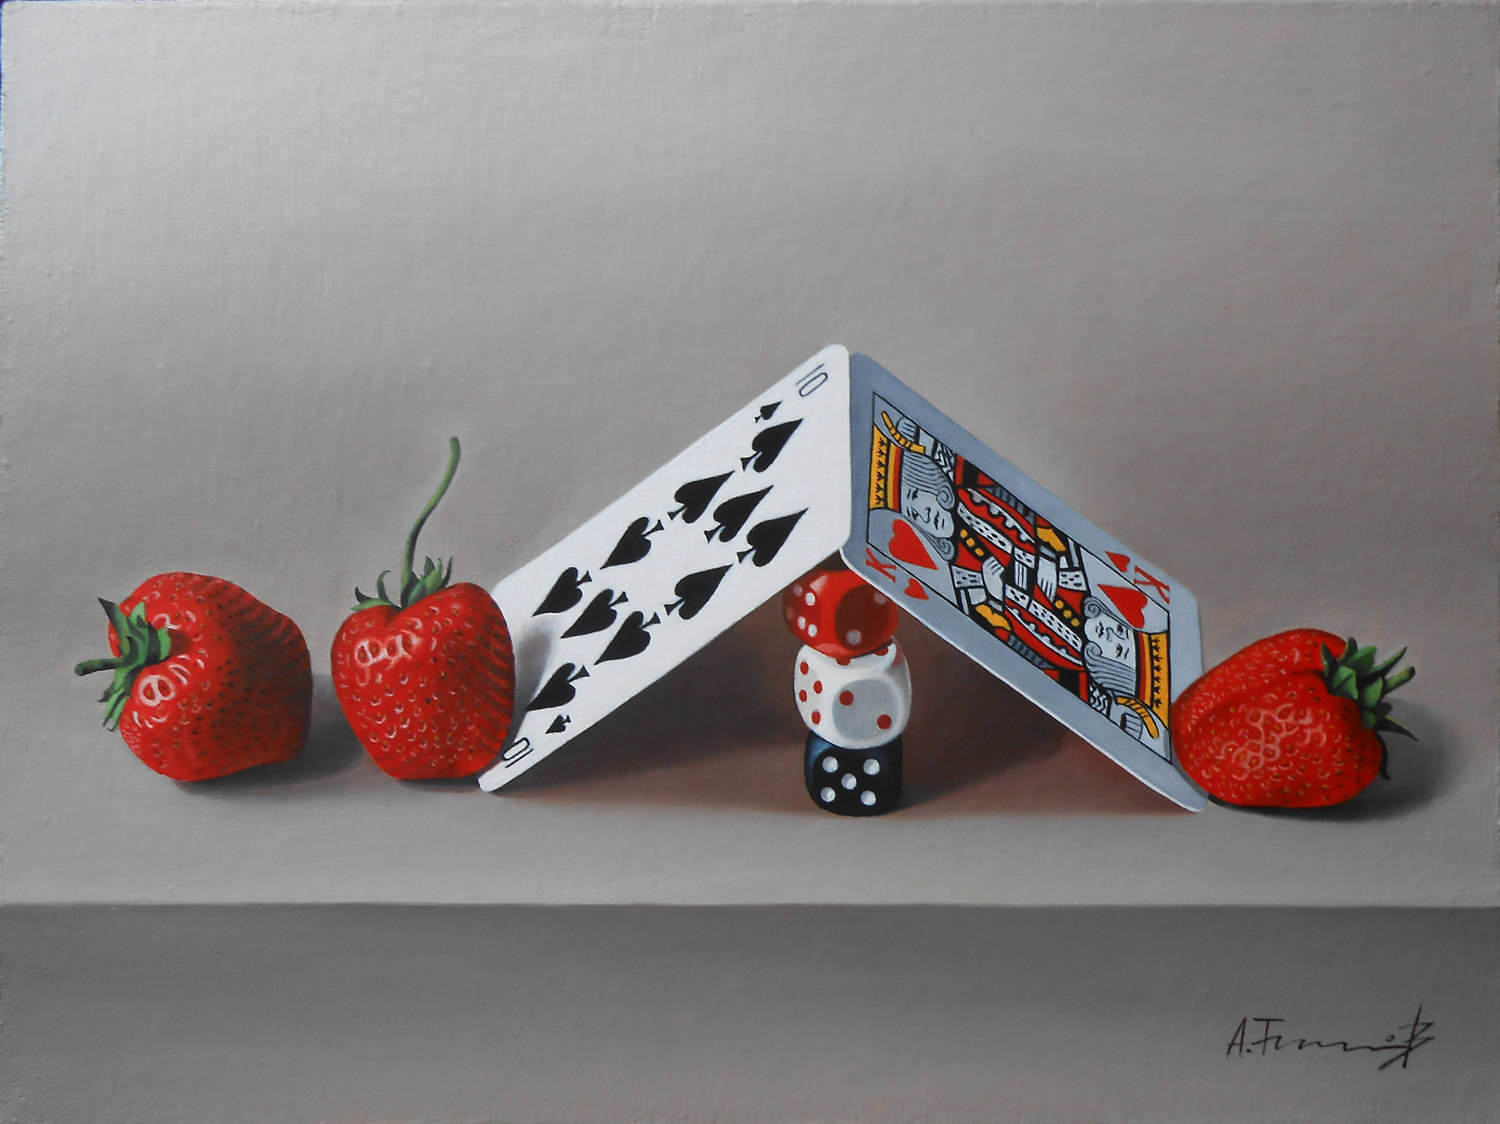 Cards, Dice and Strawberries